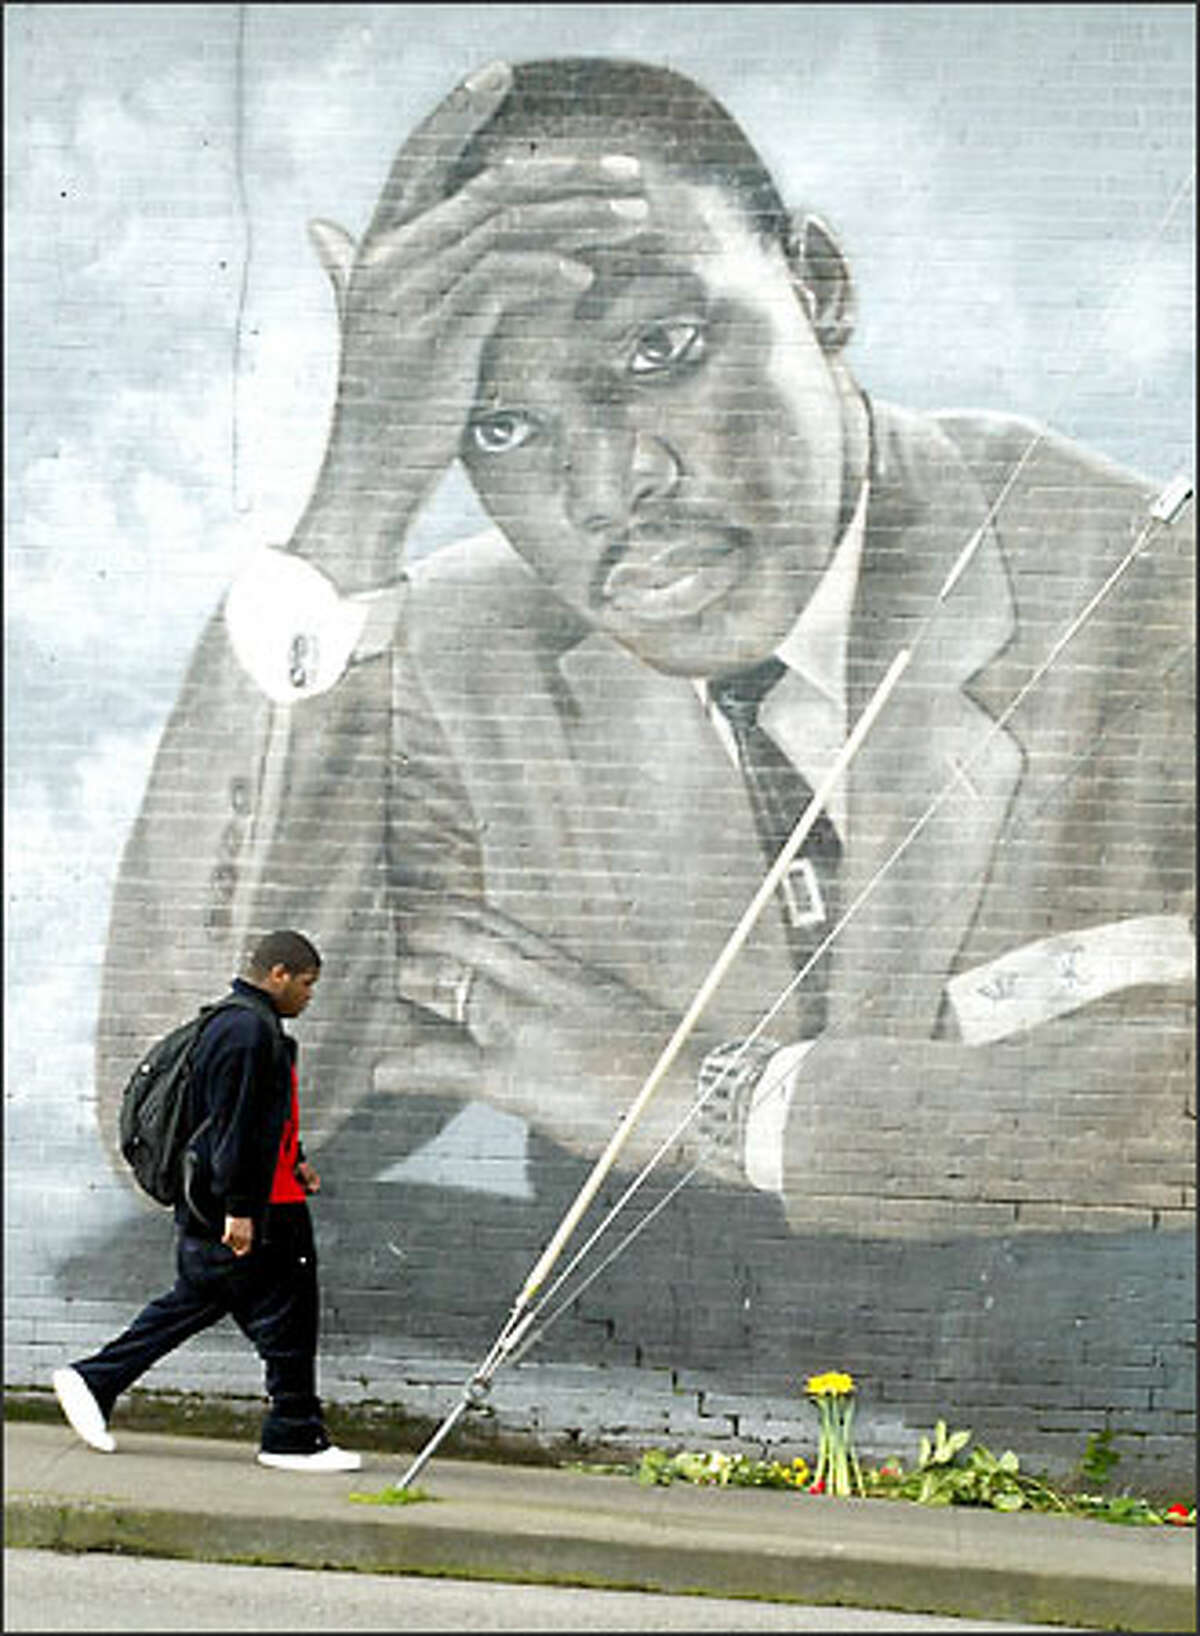 In commemoration of King's birthday, schoolchildren brought flowers and notes addressed to the slain peace activist and placed them below the mural at the intersection of MLK Way East and East Cherry Street.